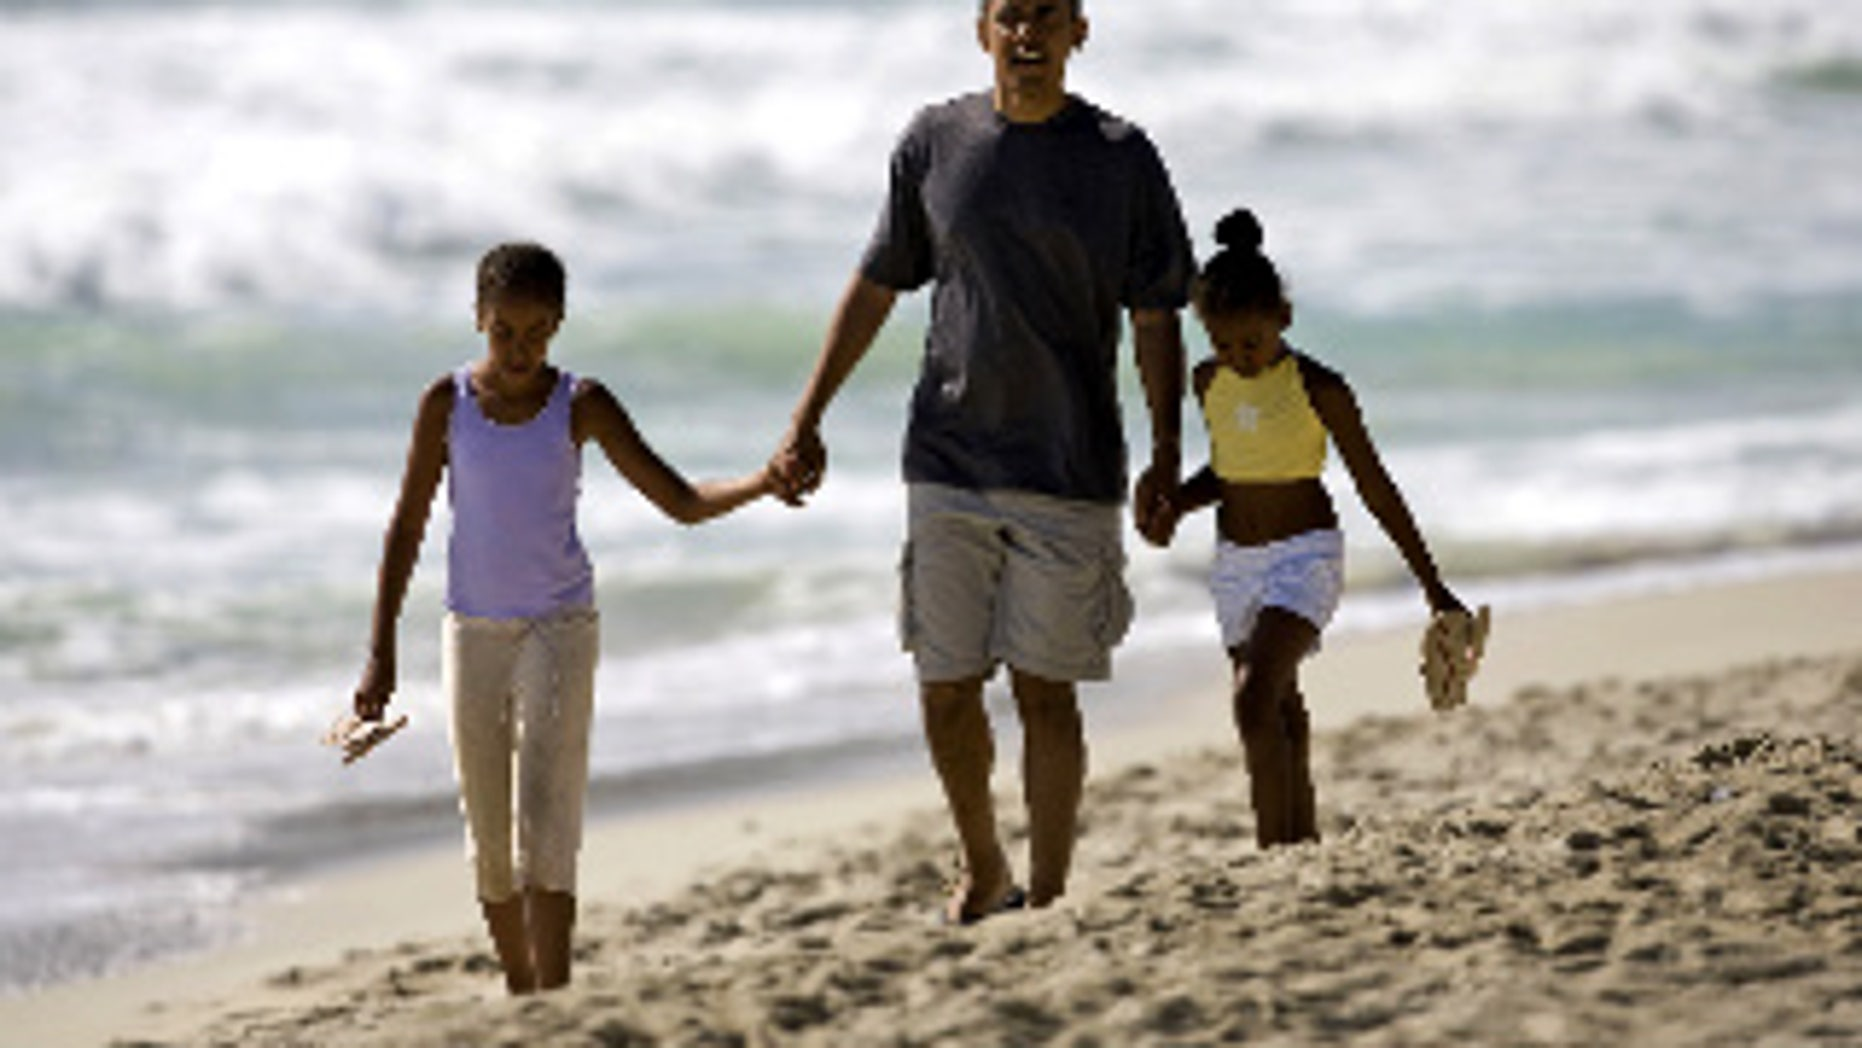 Obama and his daughters in Hawaii